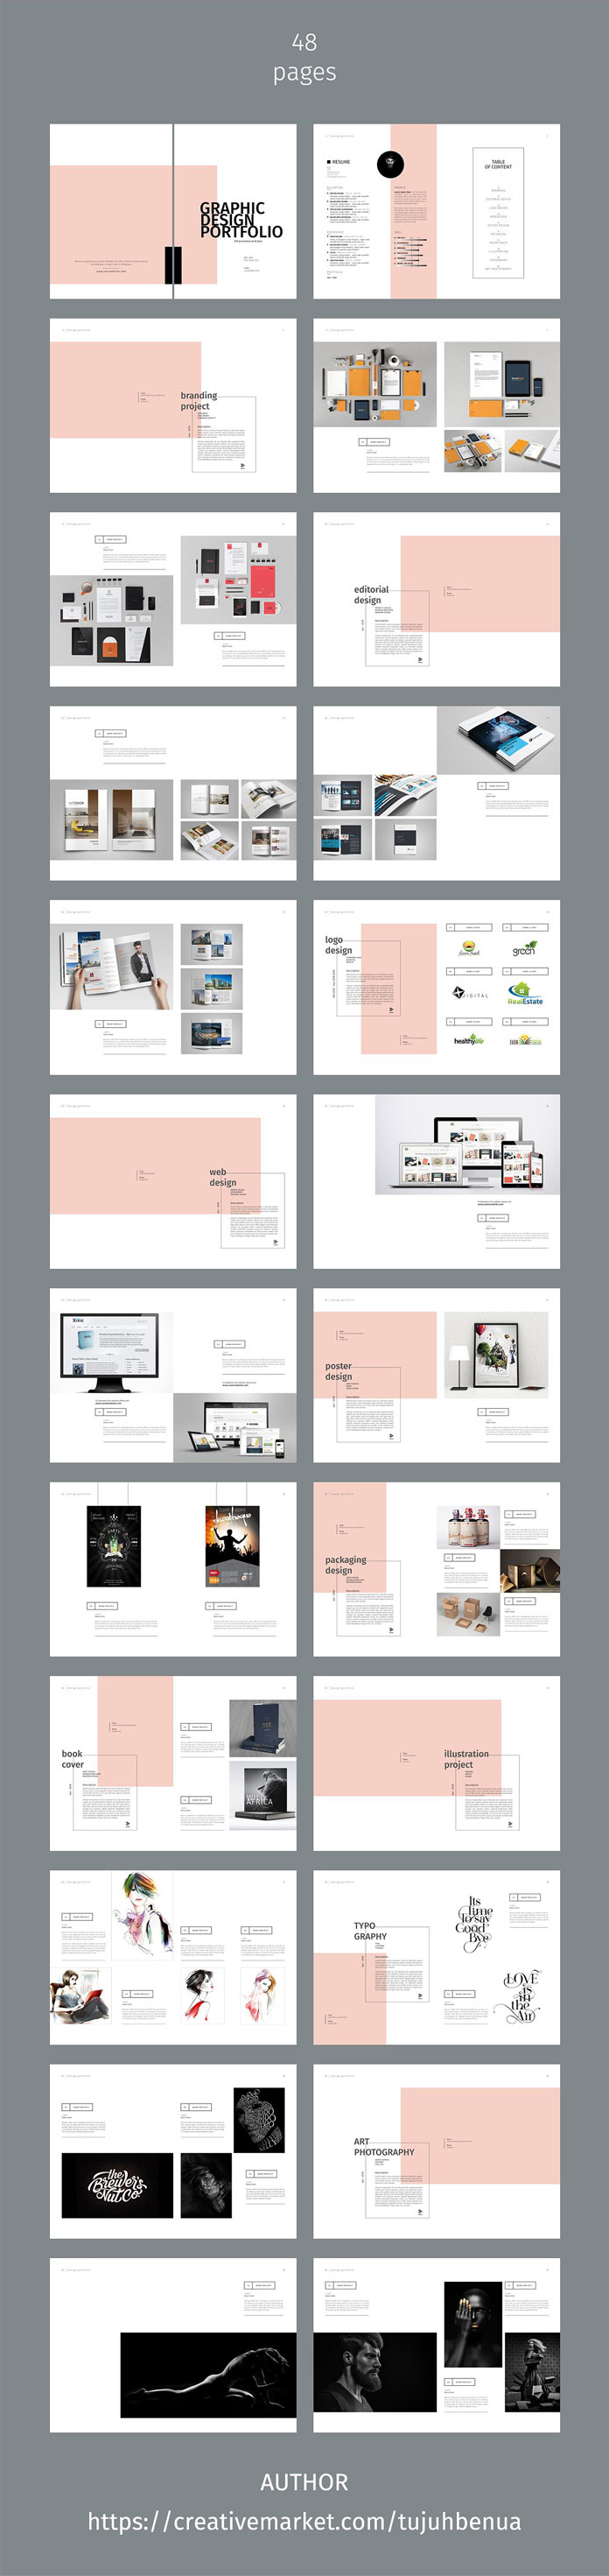 Graphic Design Portfolio Template Majormagdalene Projectorg